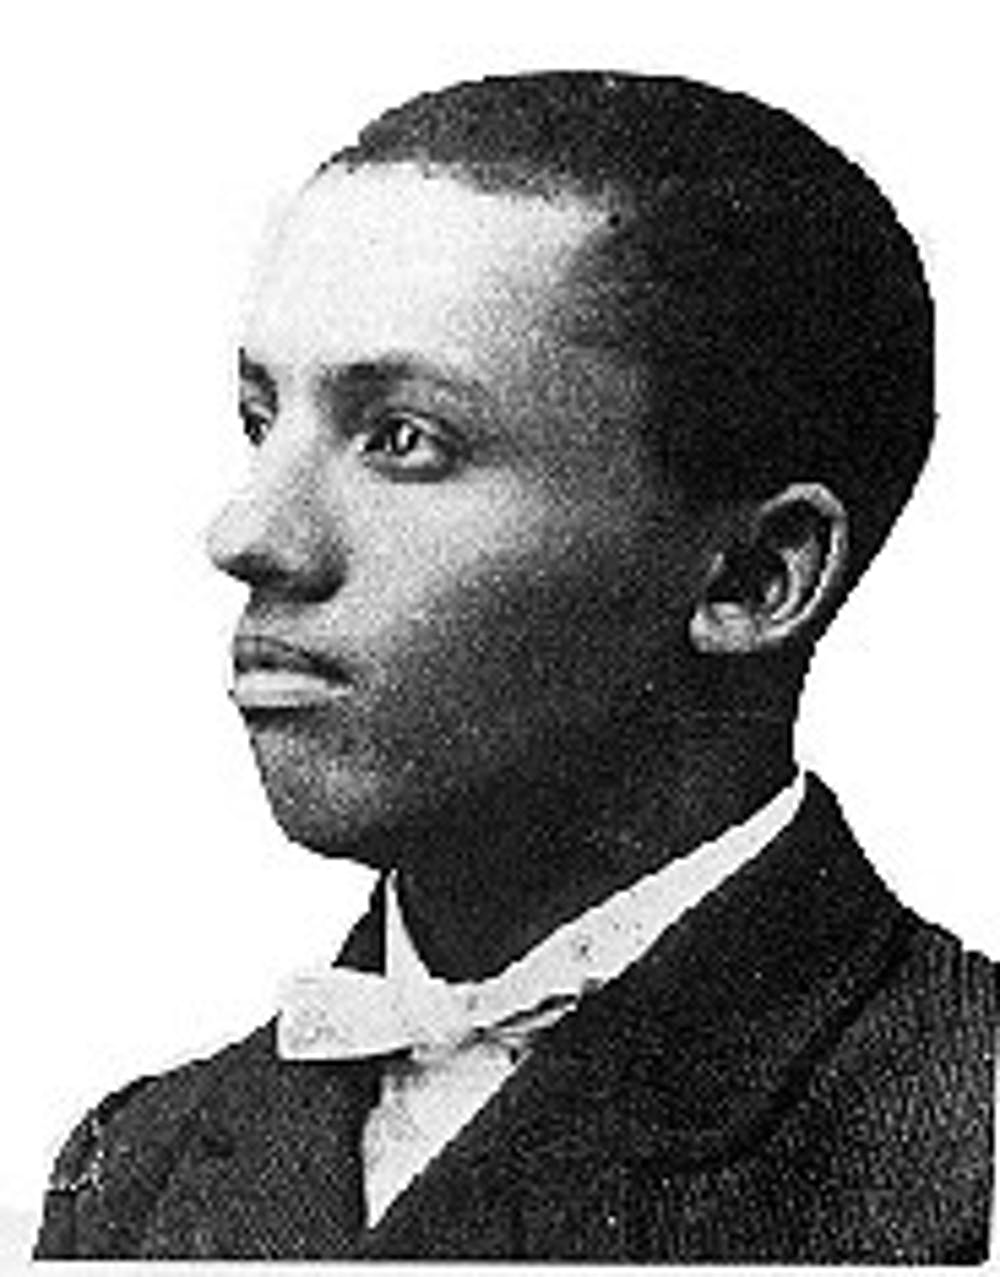 op-cartergwoodson-courtesywikimedia